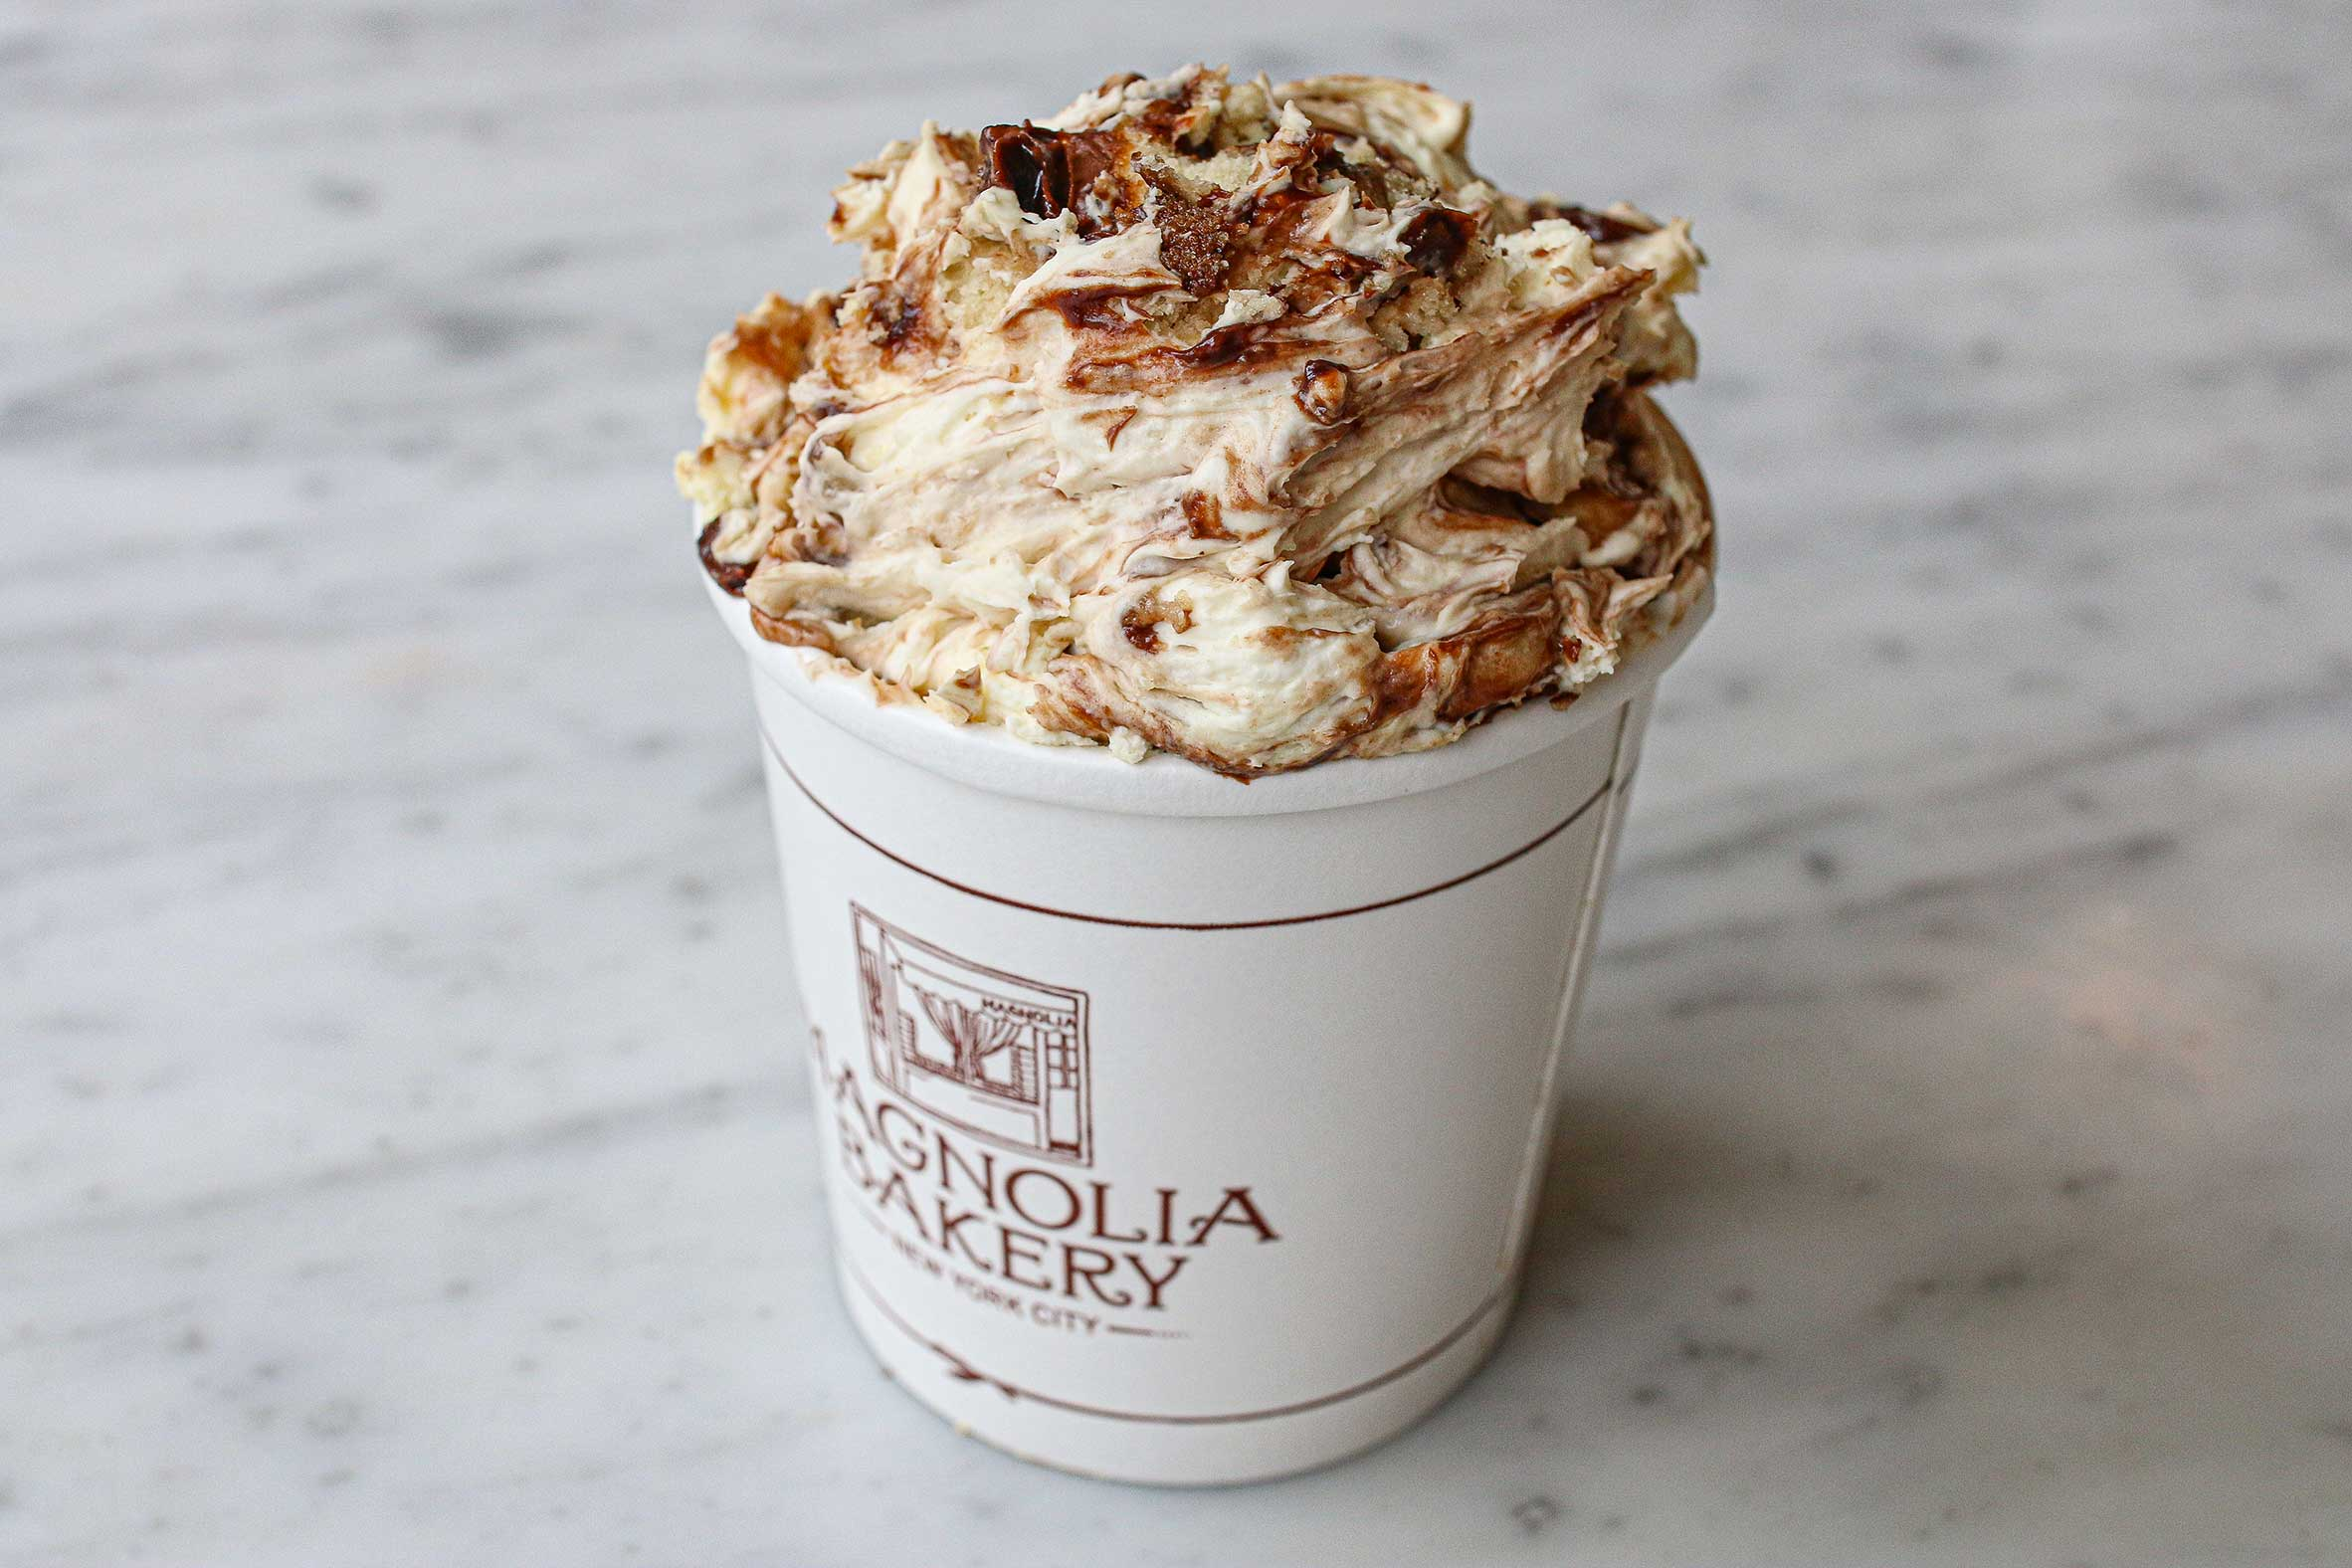 Chocolate Hazelnut - Layers of our classic banana pudding (vanilla pudding, bananas and vanilla wafers) with a decadent layer of Nutella®.August 12-18